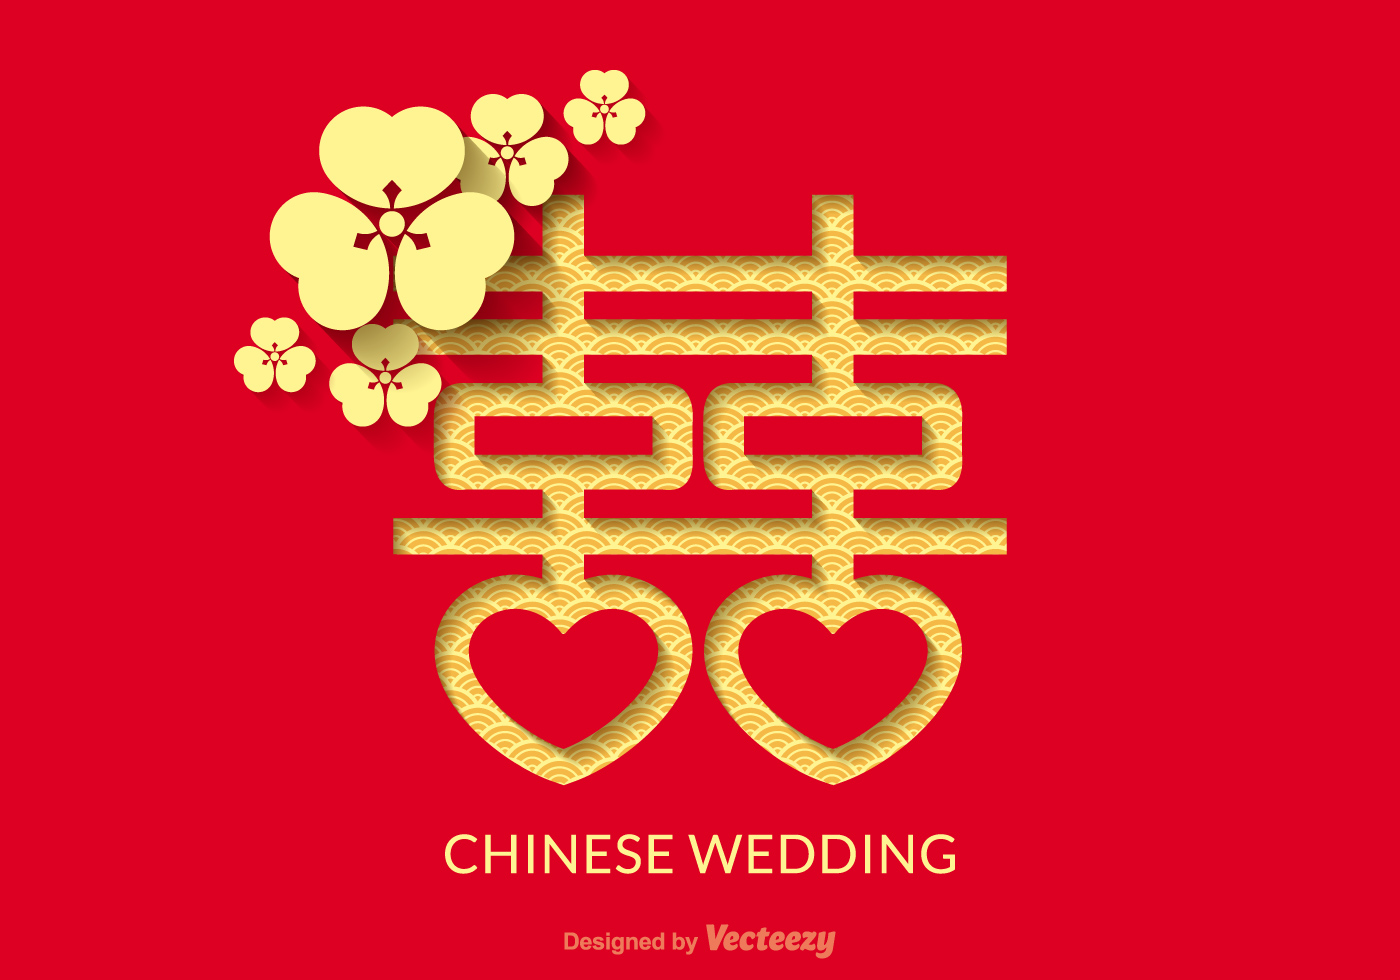 Chinese Wedding Invitations Nyc - Ivoiregion